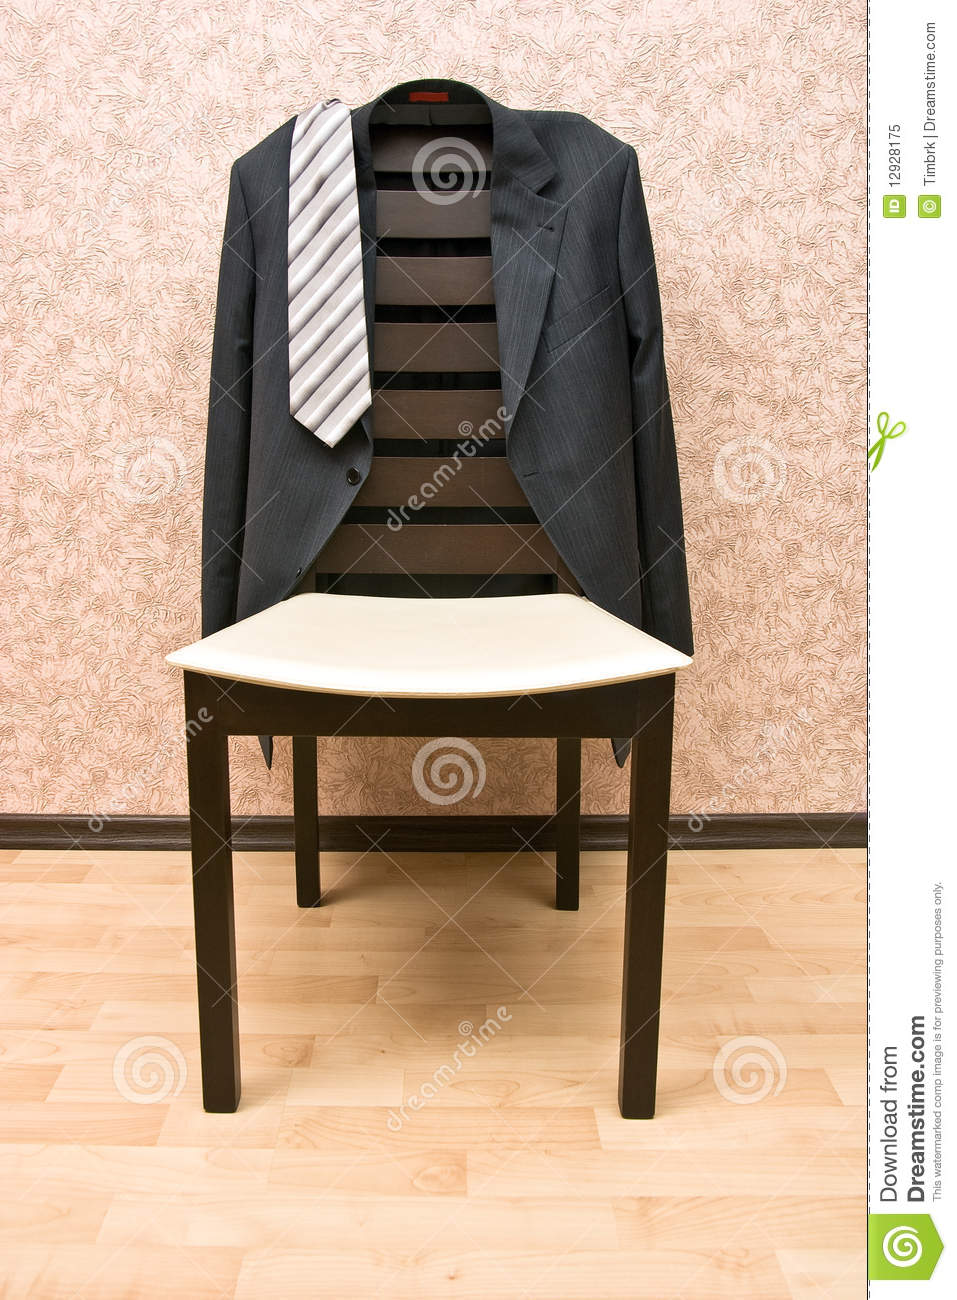 Jacket And Chair Royalty Free Stock Photo Image 12928175